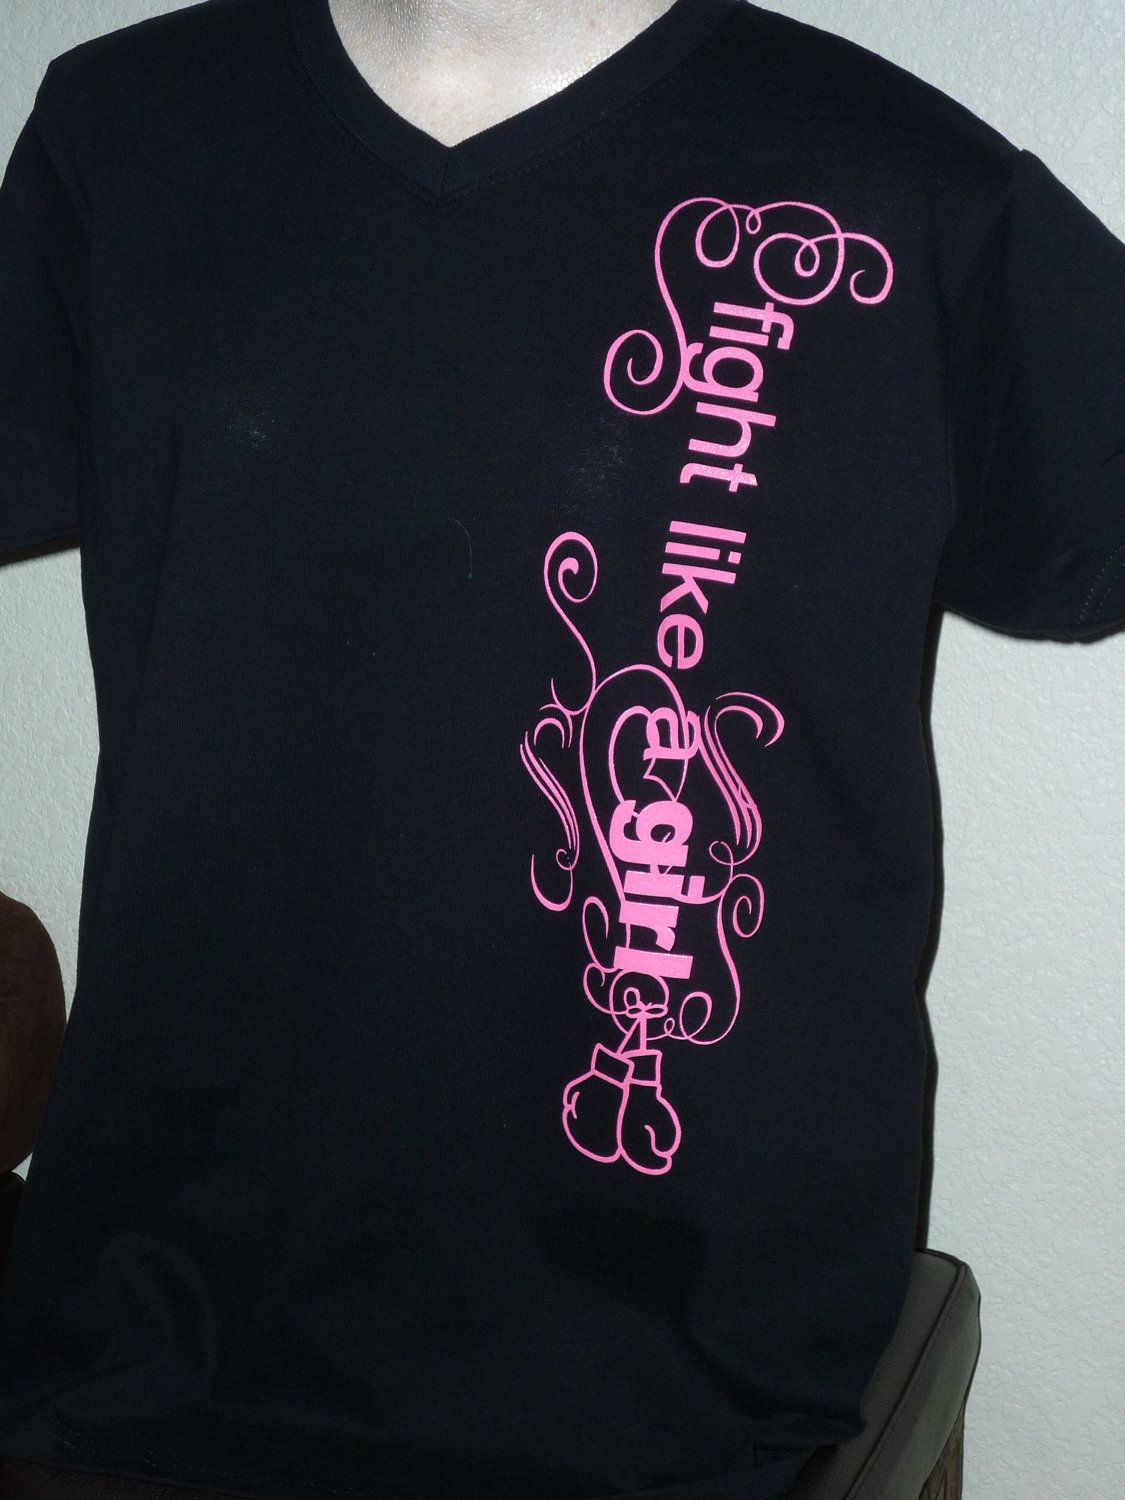 shirt Fight Like a Girl Breast Cancer Awareness. $15.00, via Etsy.